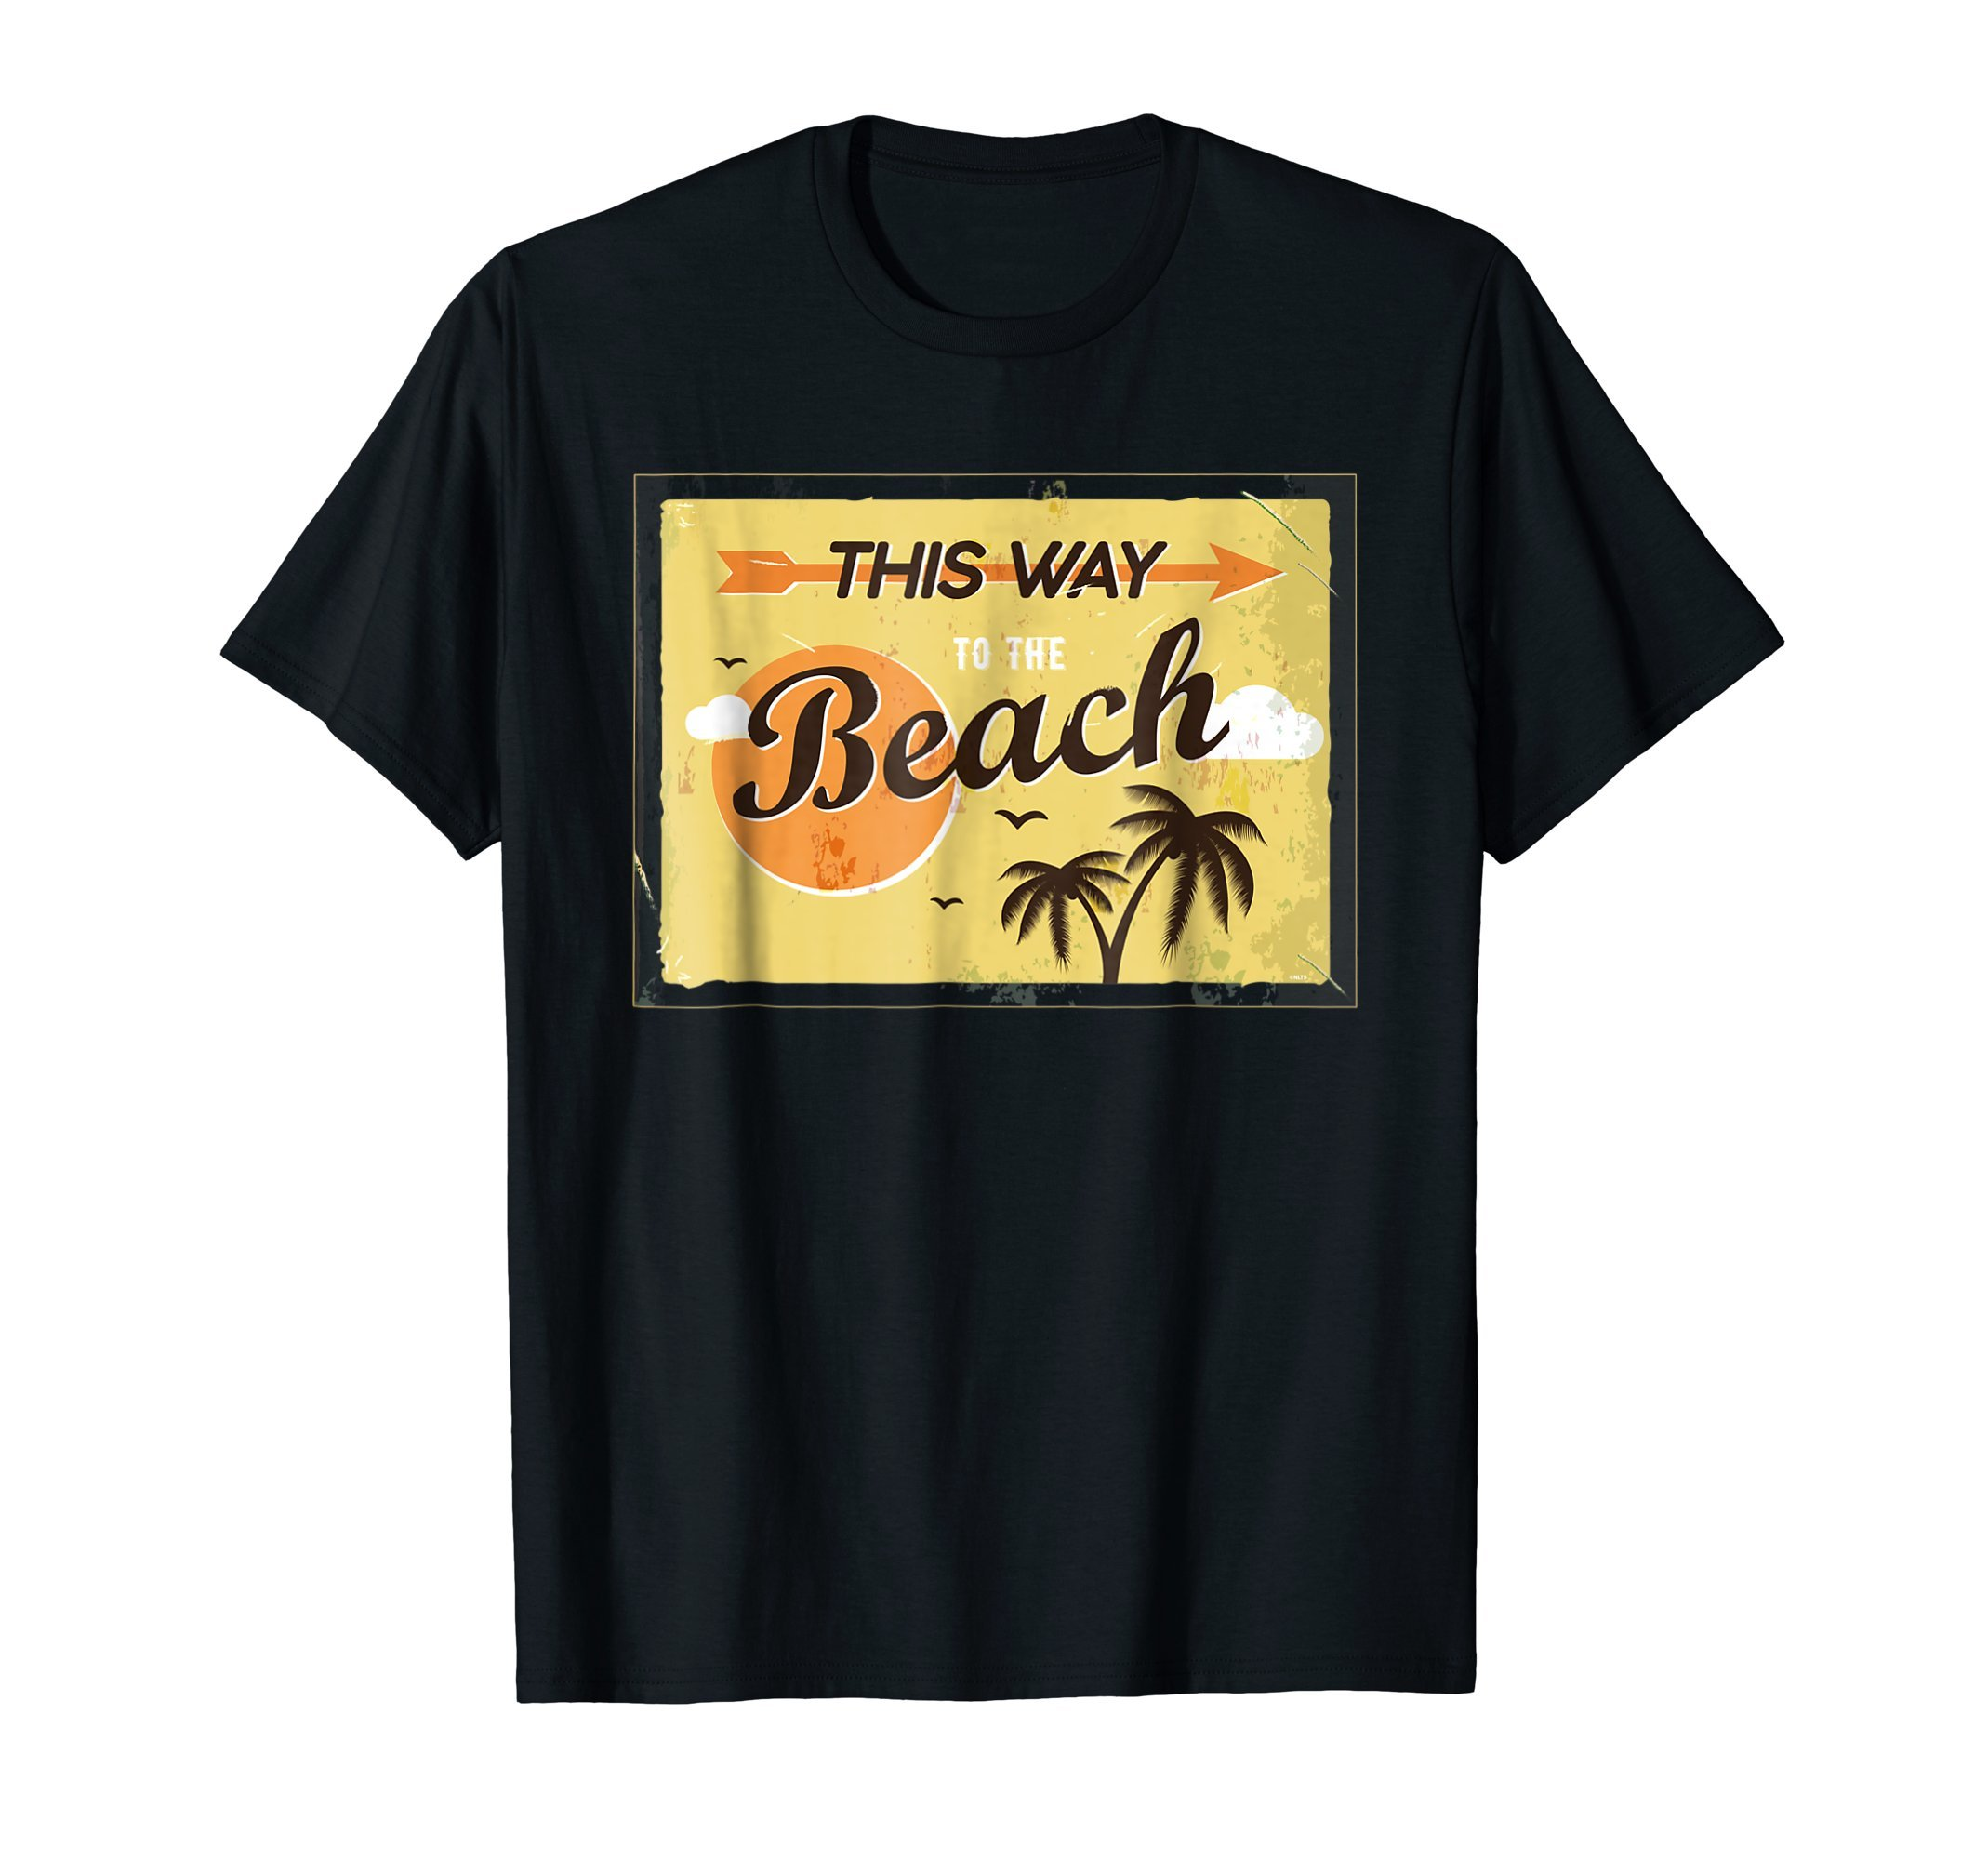 This-Way-to-the-Beach-Retro-Vintage-T-Shirt-Gift-Tee-Shirt